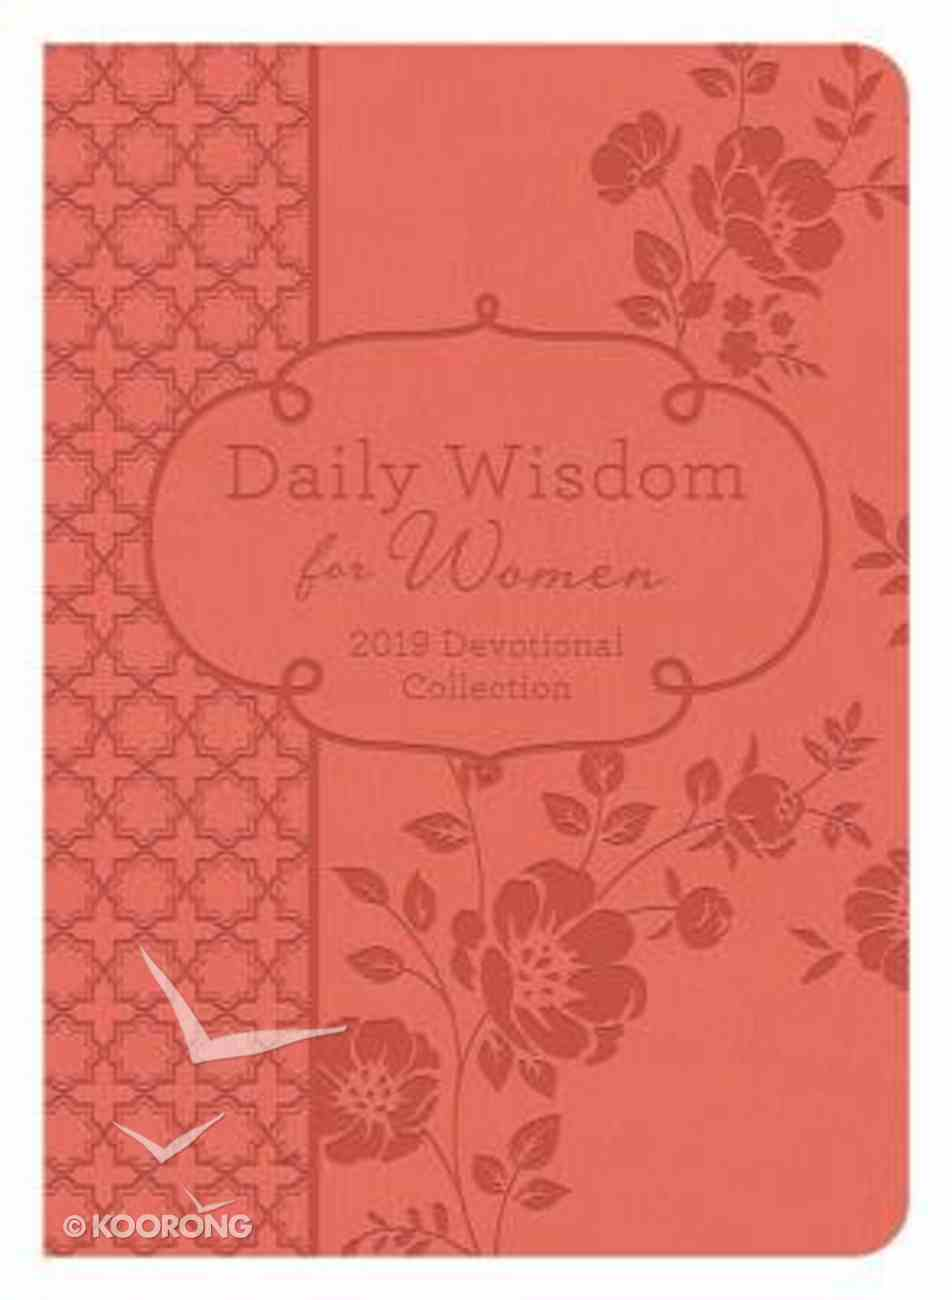 Daily Wisdom For Women 2019 Devotional Collection Paperback